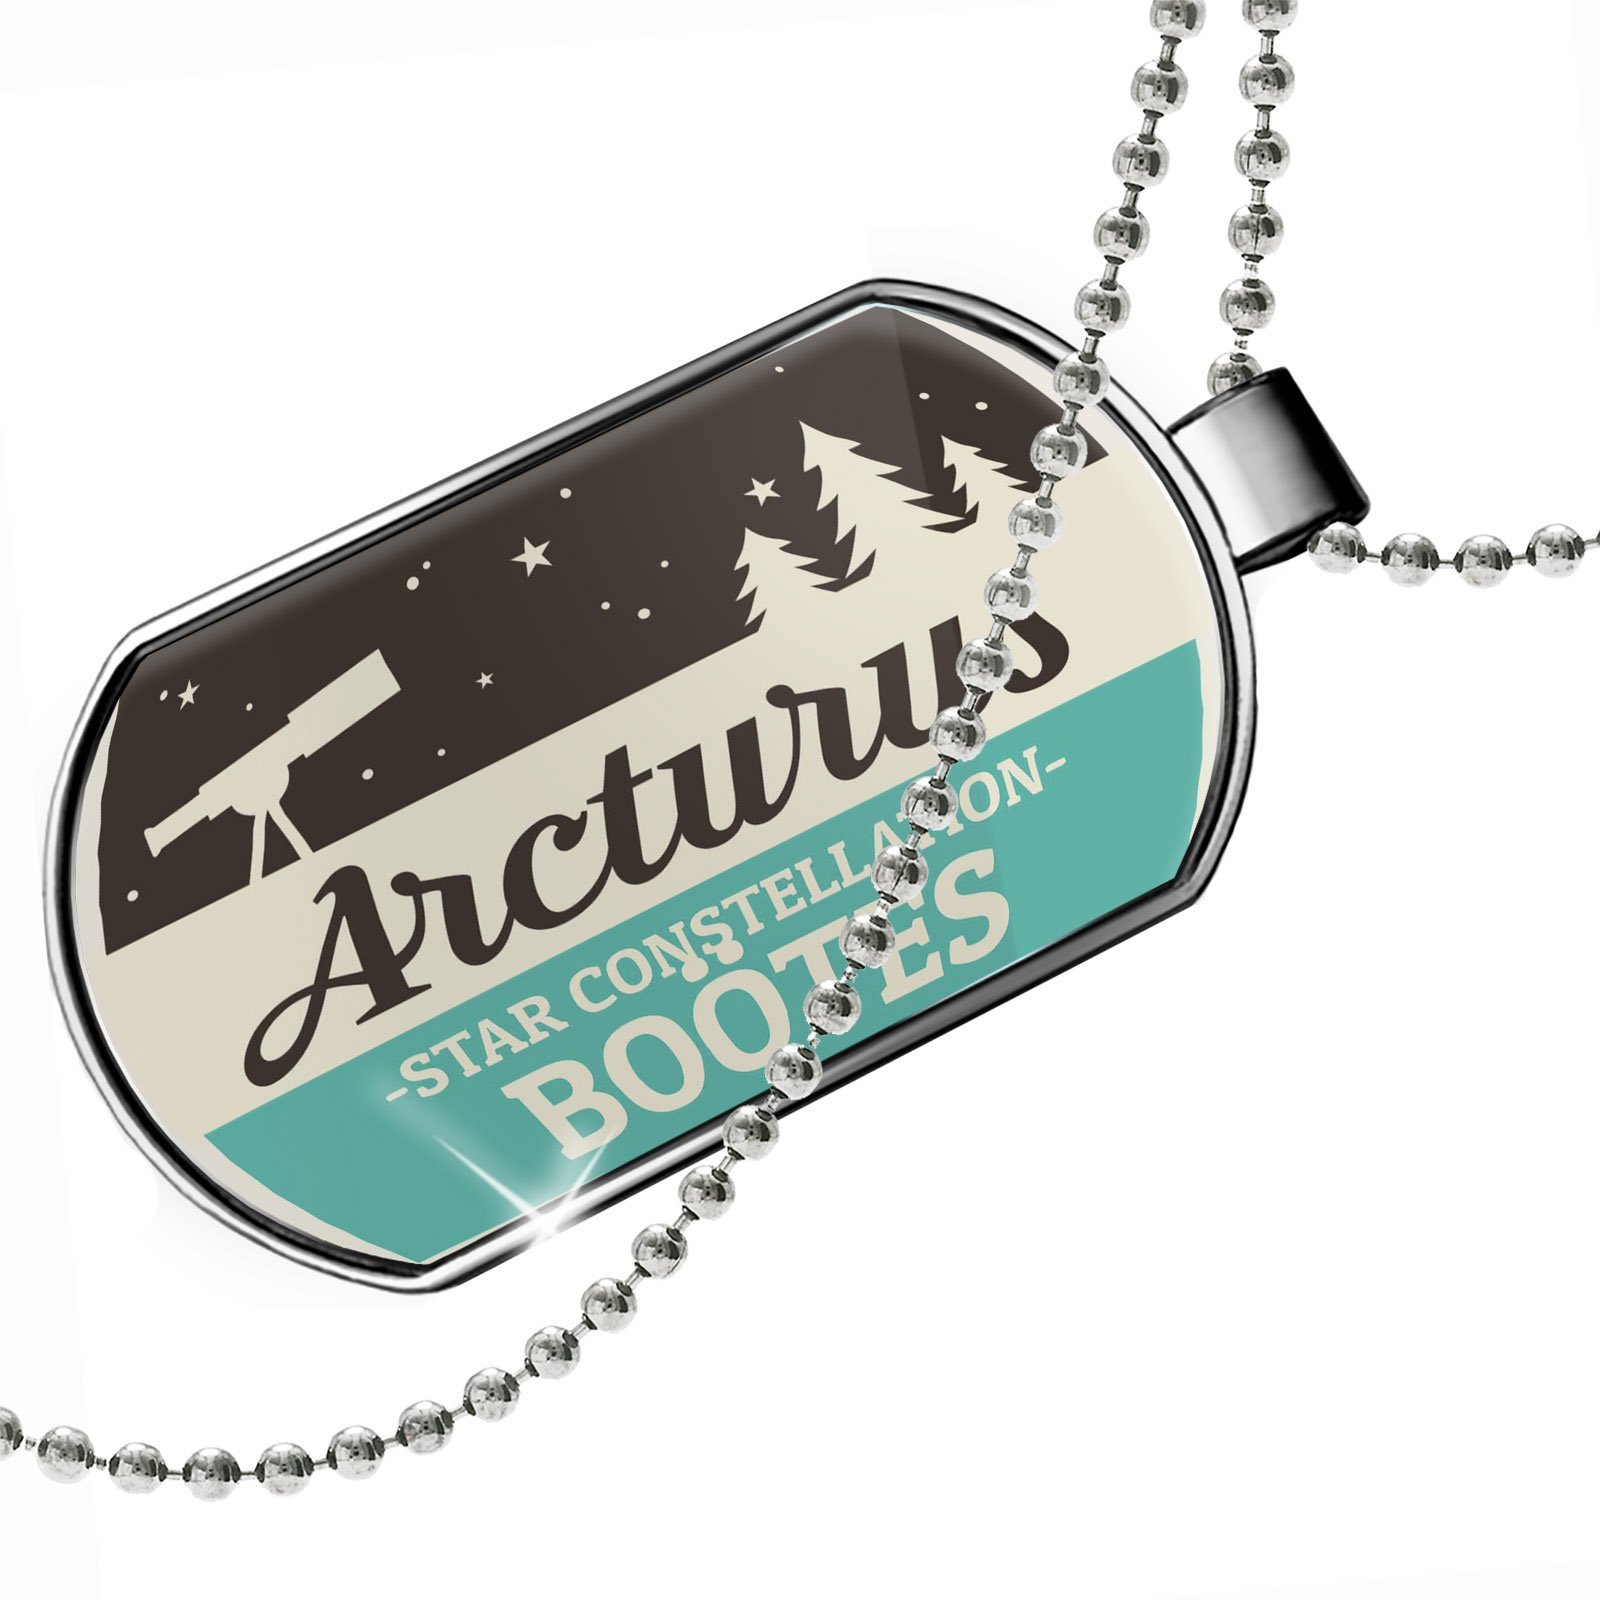 Dogtag Star Constellation Name Boötes - Arcturus  Dog tags necklace - Neonblond